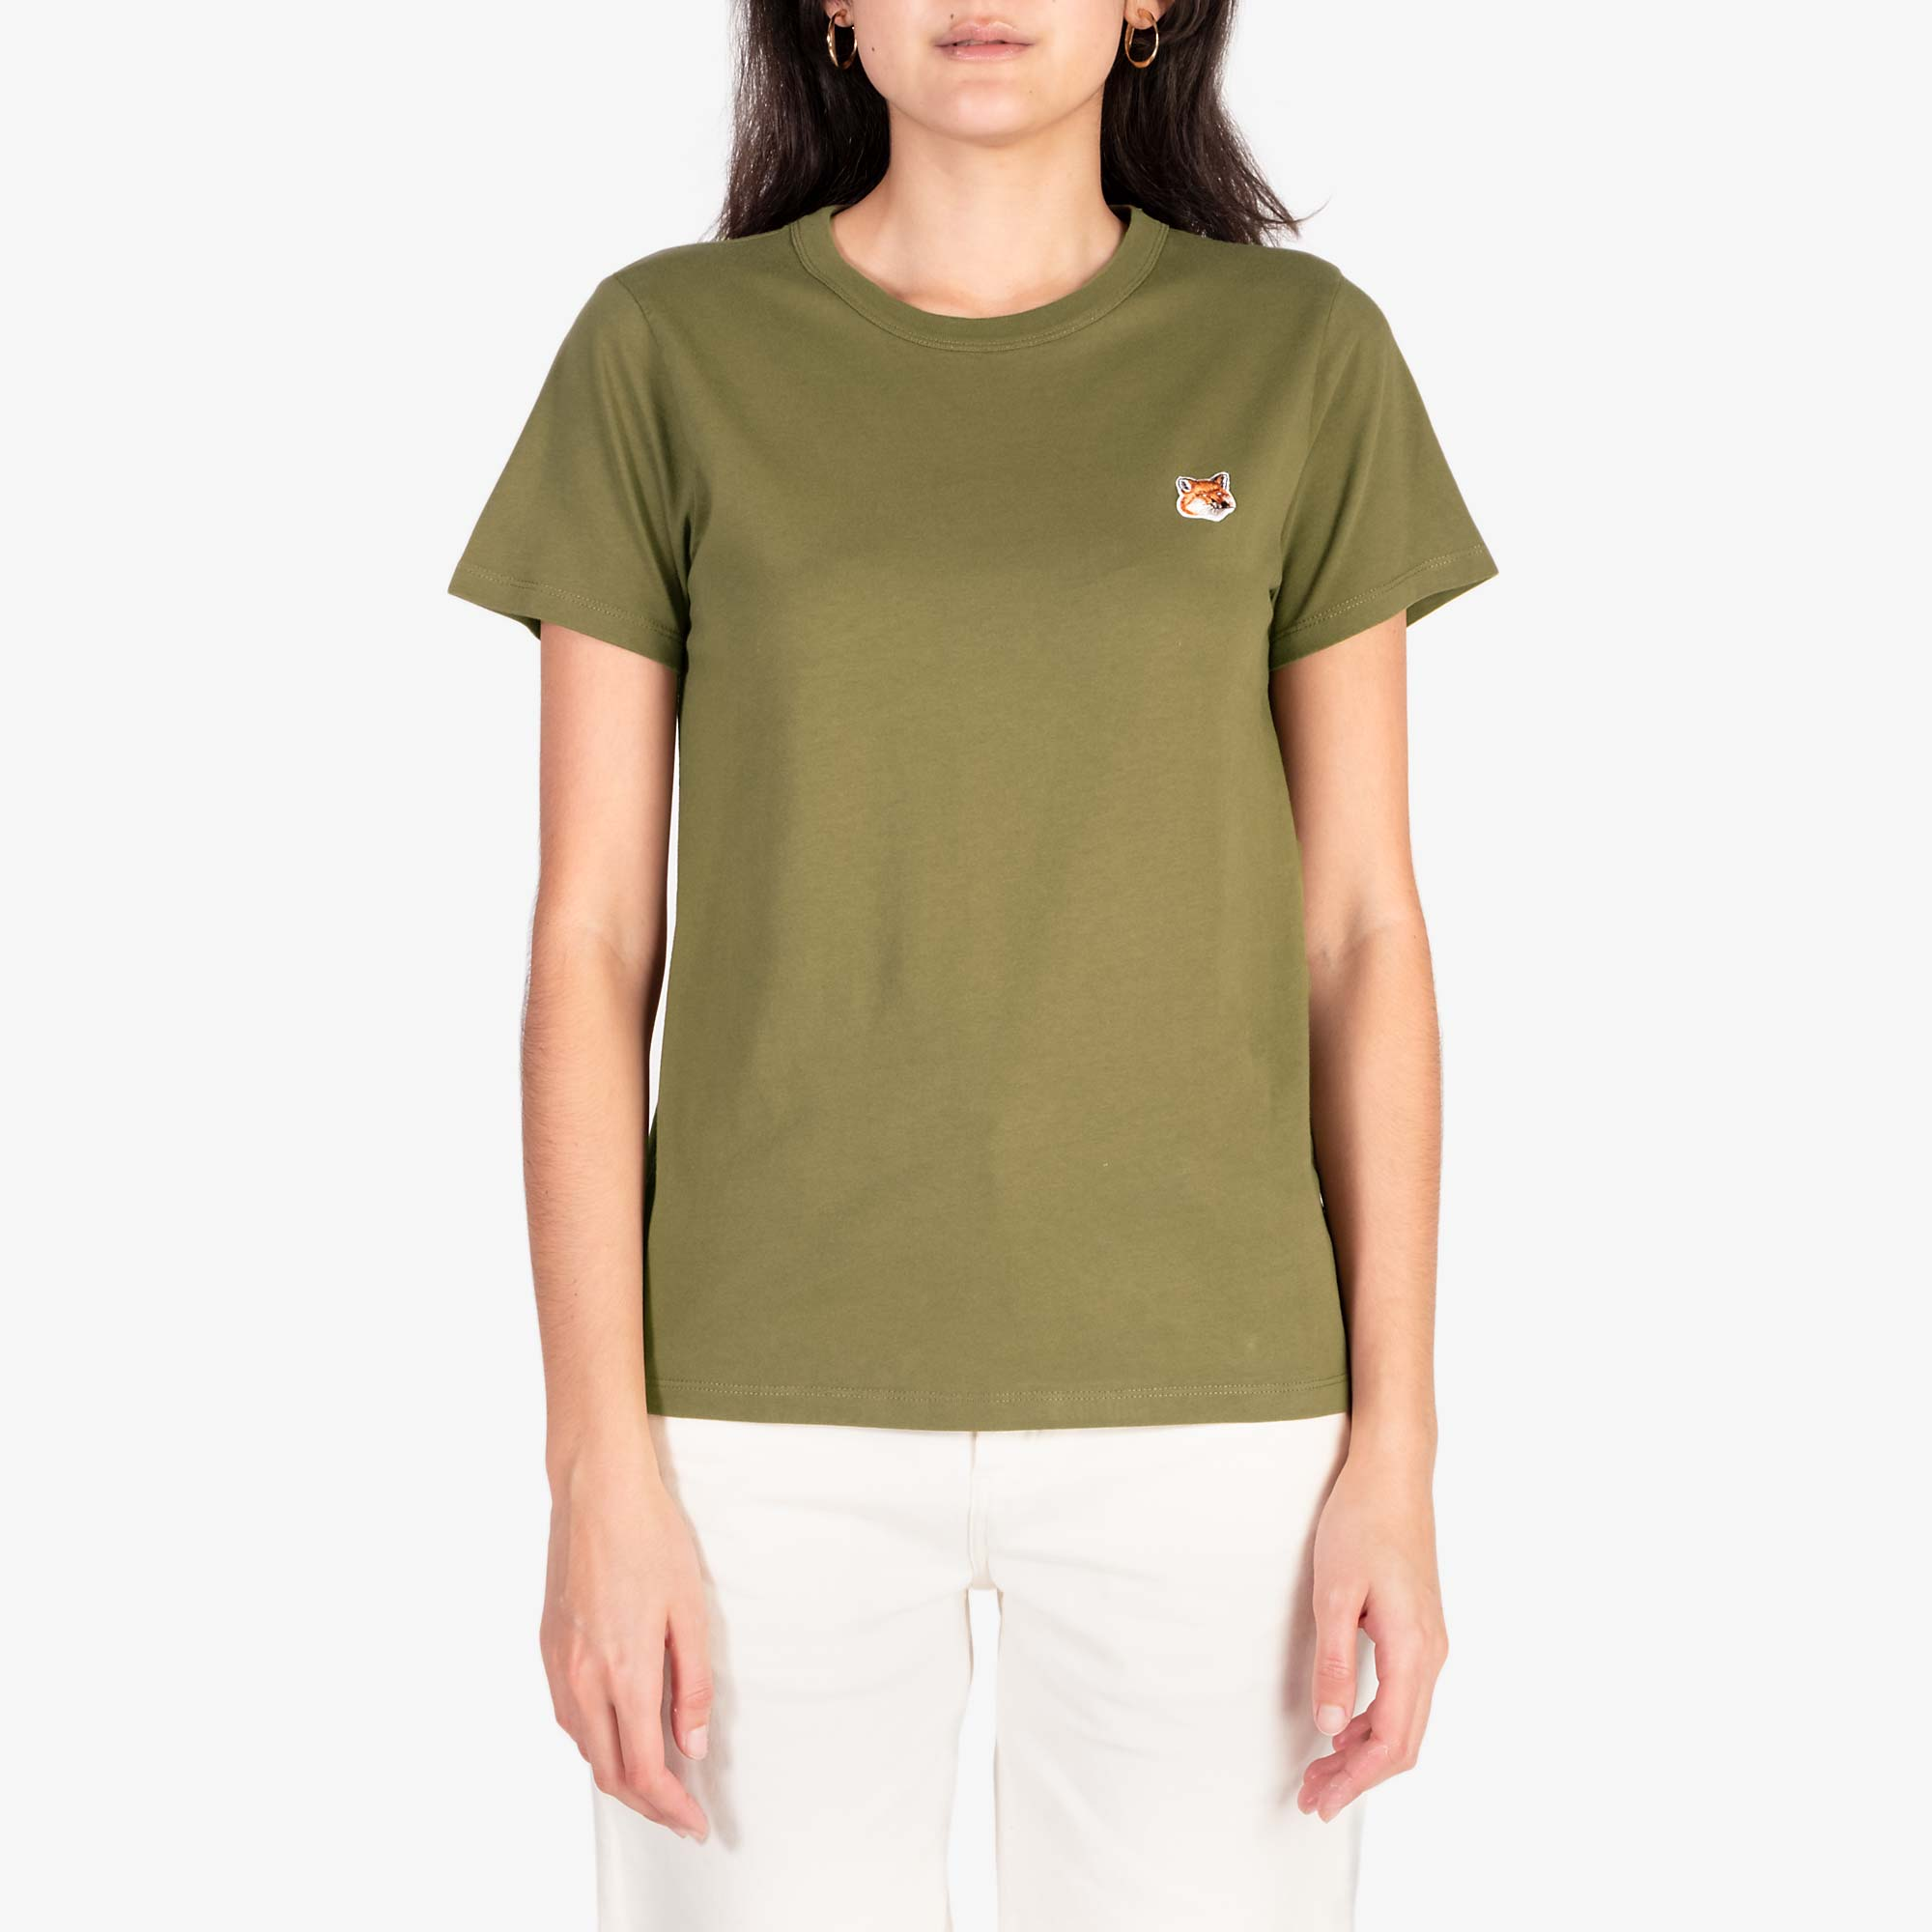 Maison Kitsune Women's Fox Head Patch Tee - Khaki 1